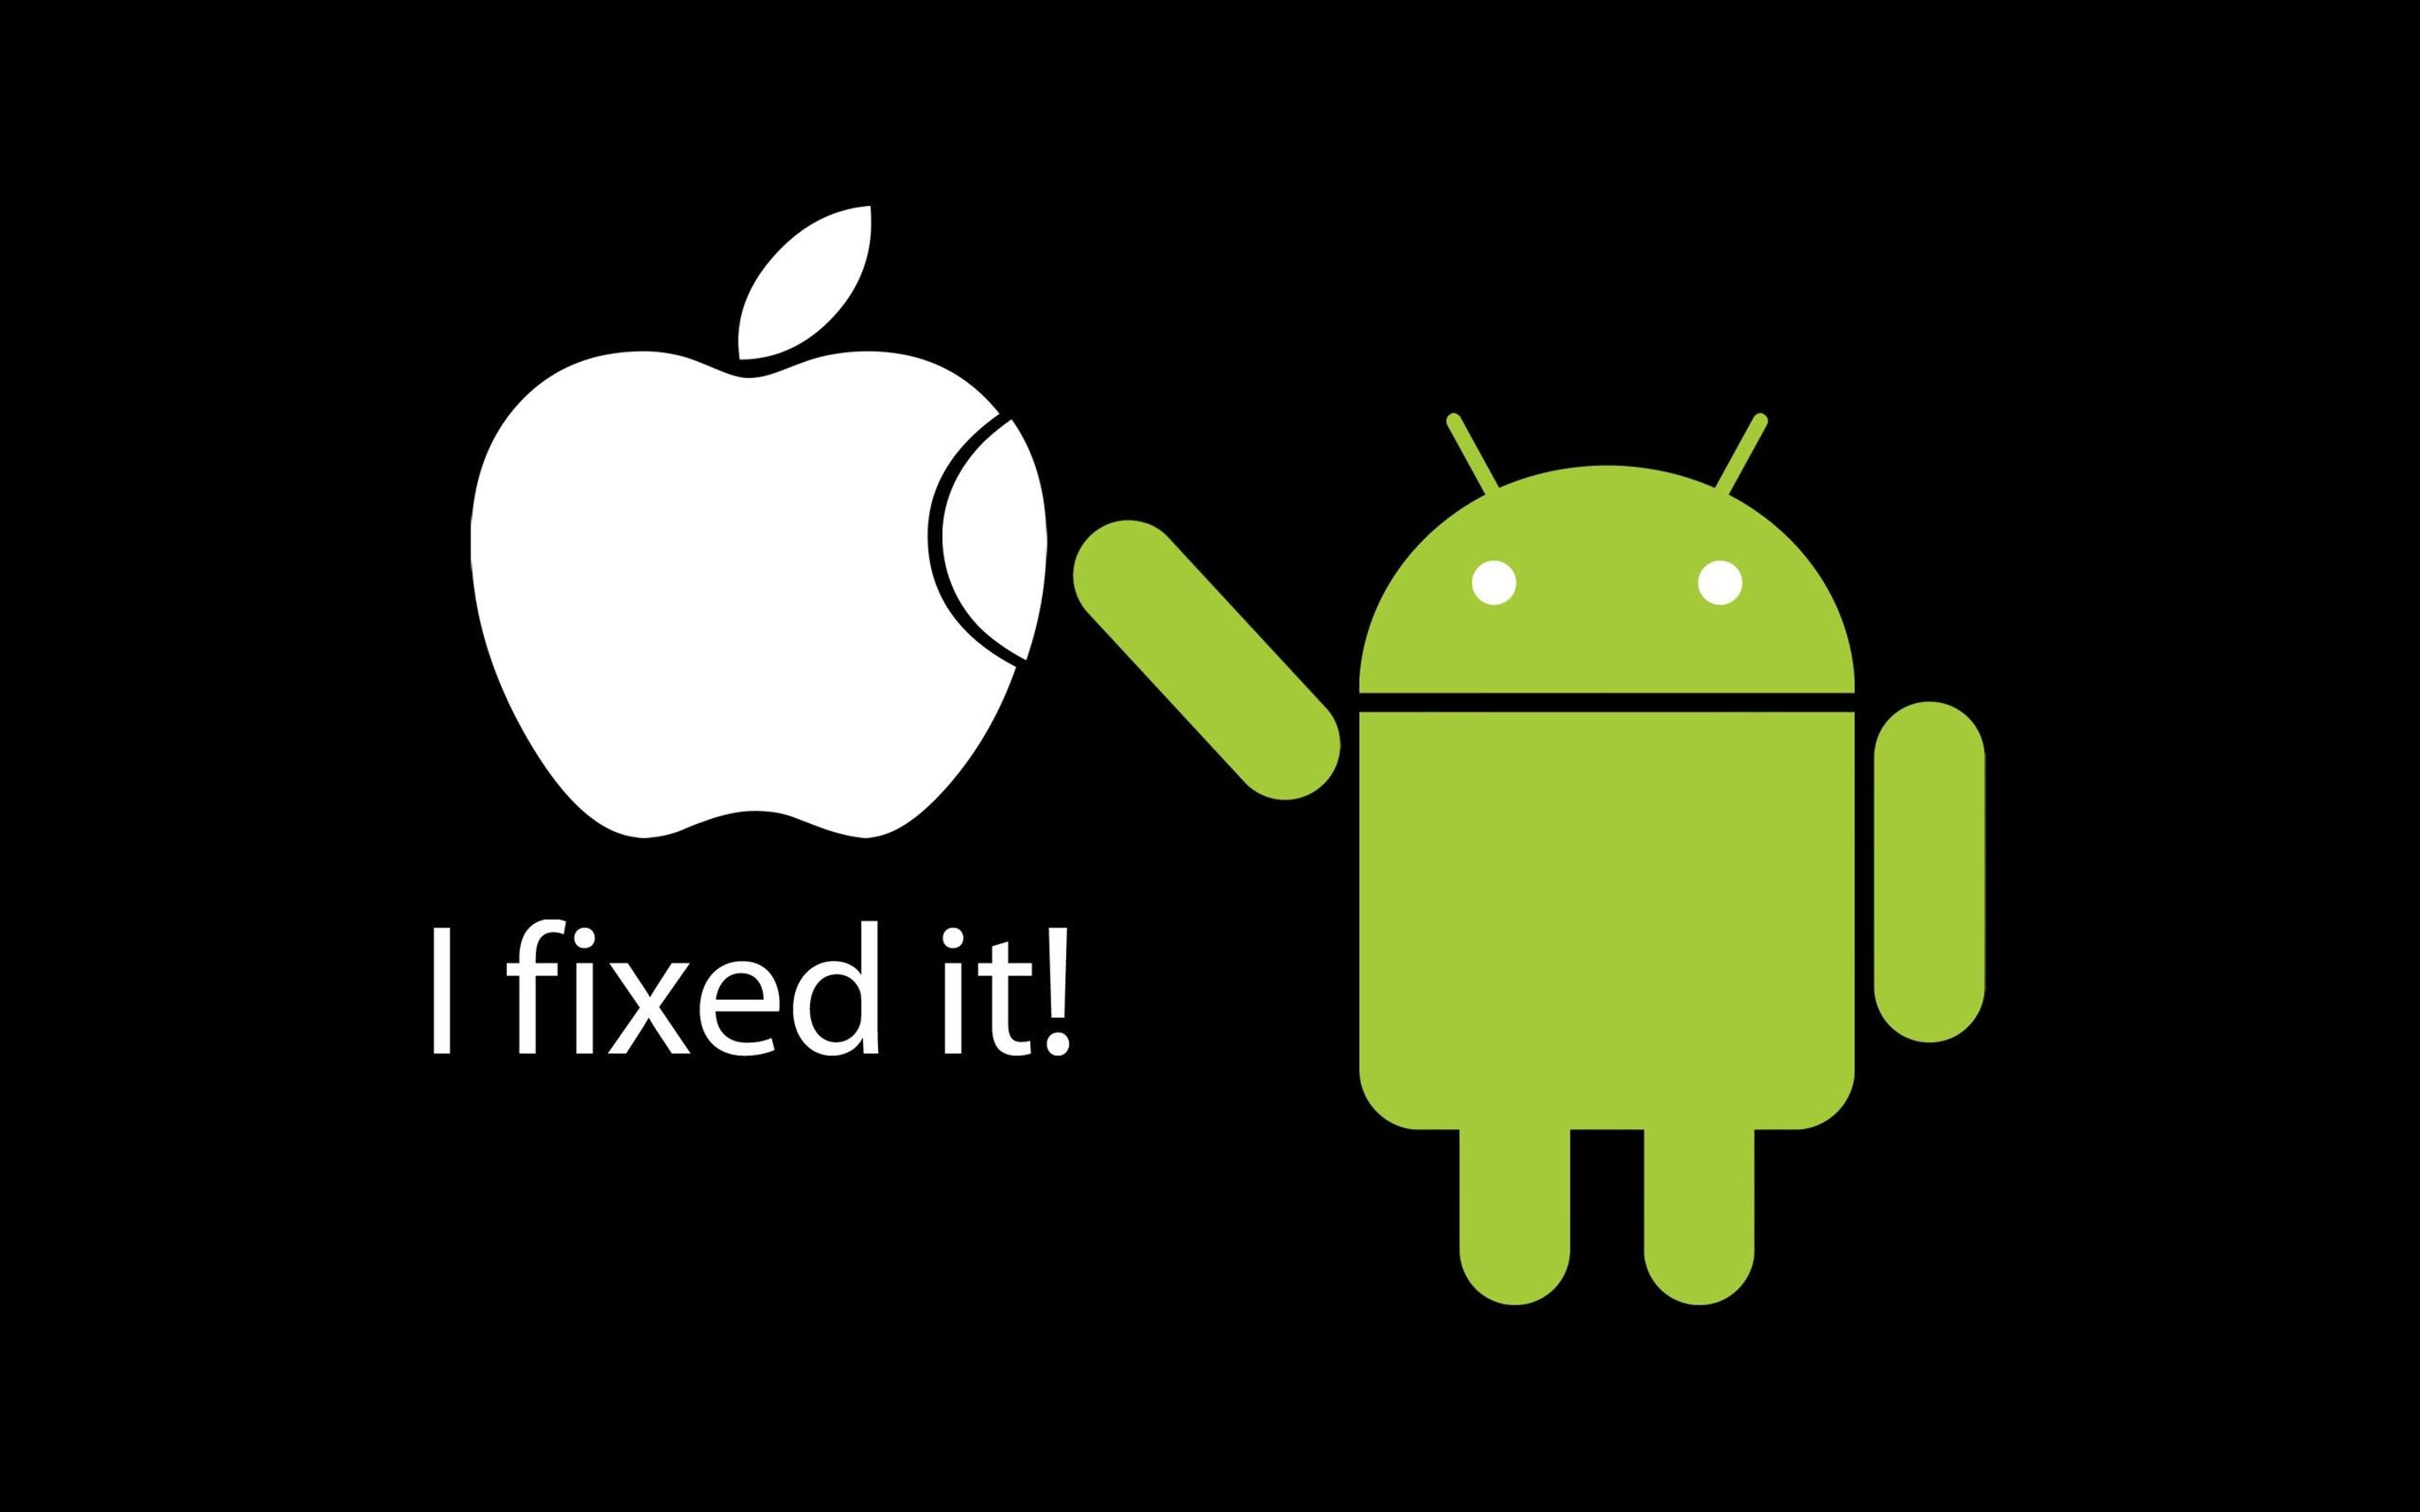 Apple vs android i fixed it funny wallpaper wallpaper download apple vs android i fixed it funny wallpaper wallpaper download 2880x1800 voltagebd Image collections